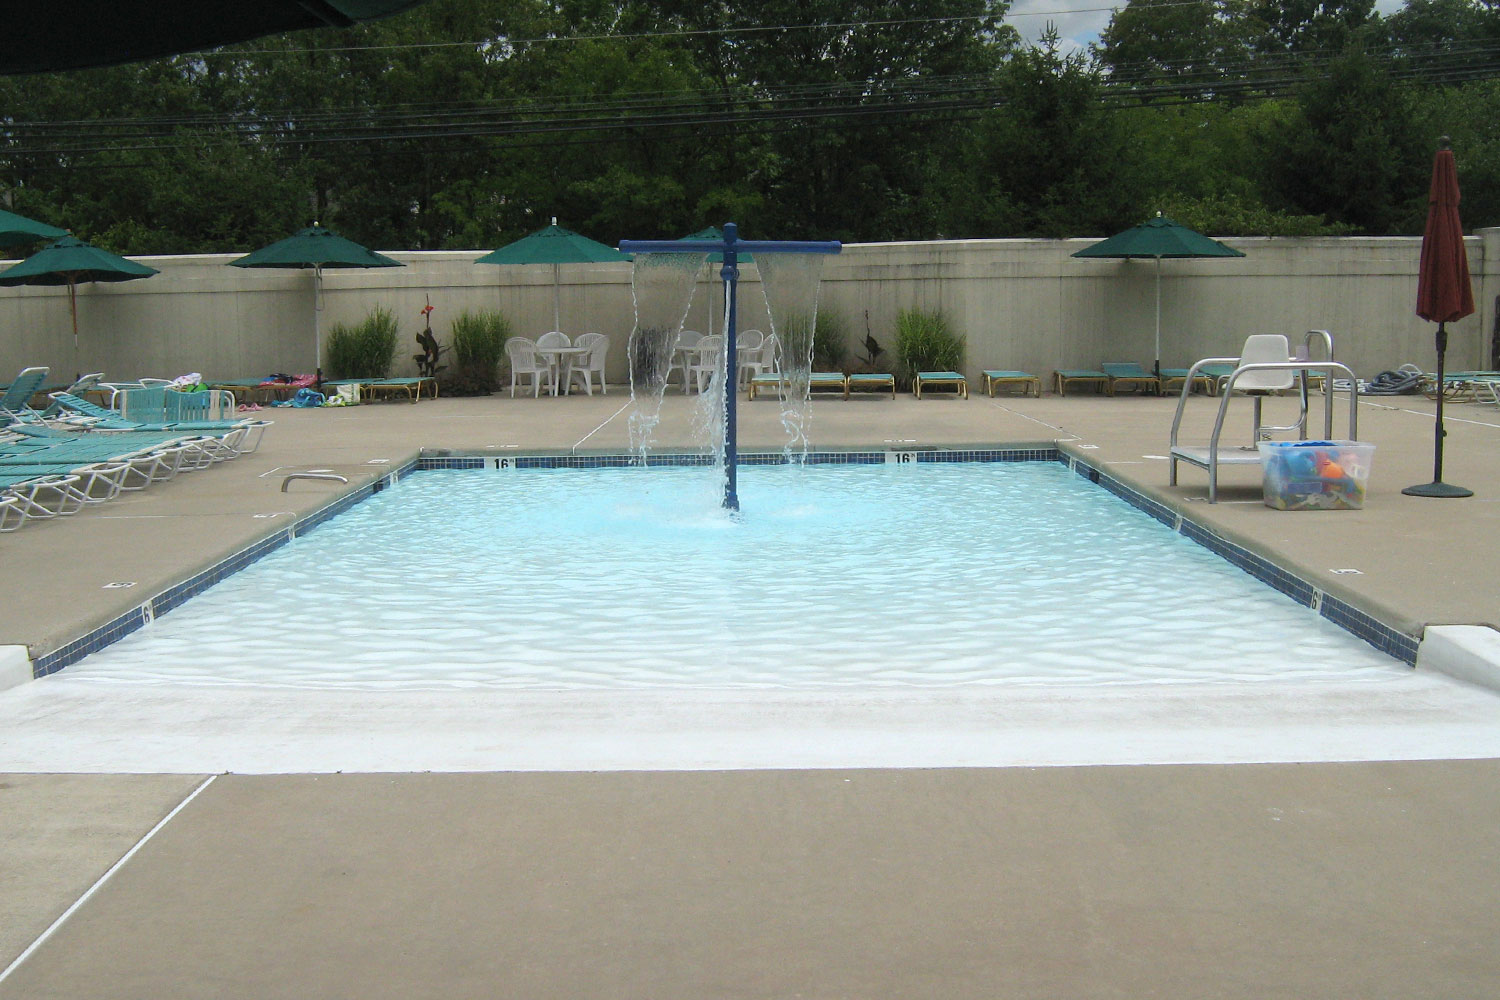 New Construction, The Bucks Club: Zero-Entry Wading Pool, New Filtration System, Jamison, PA